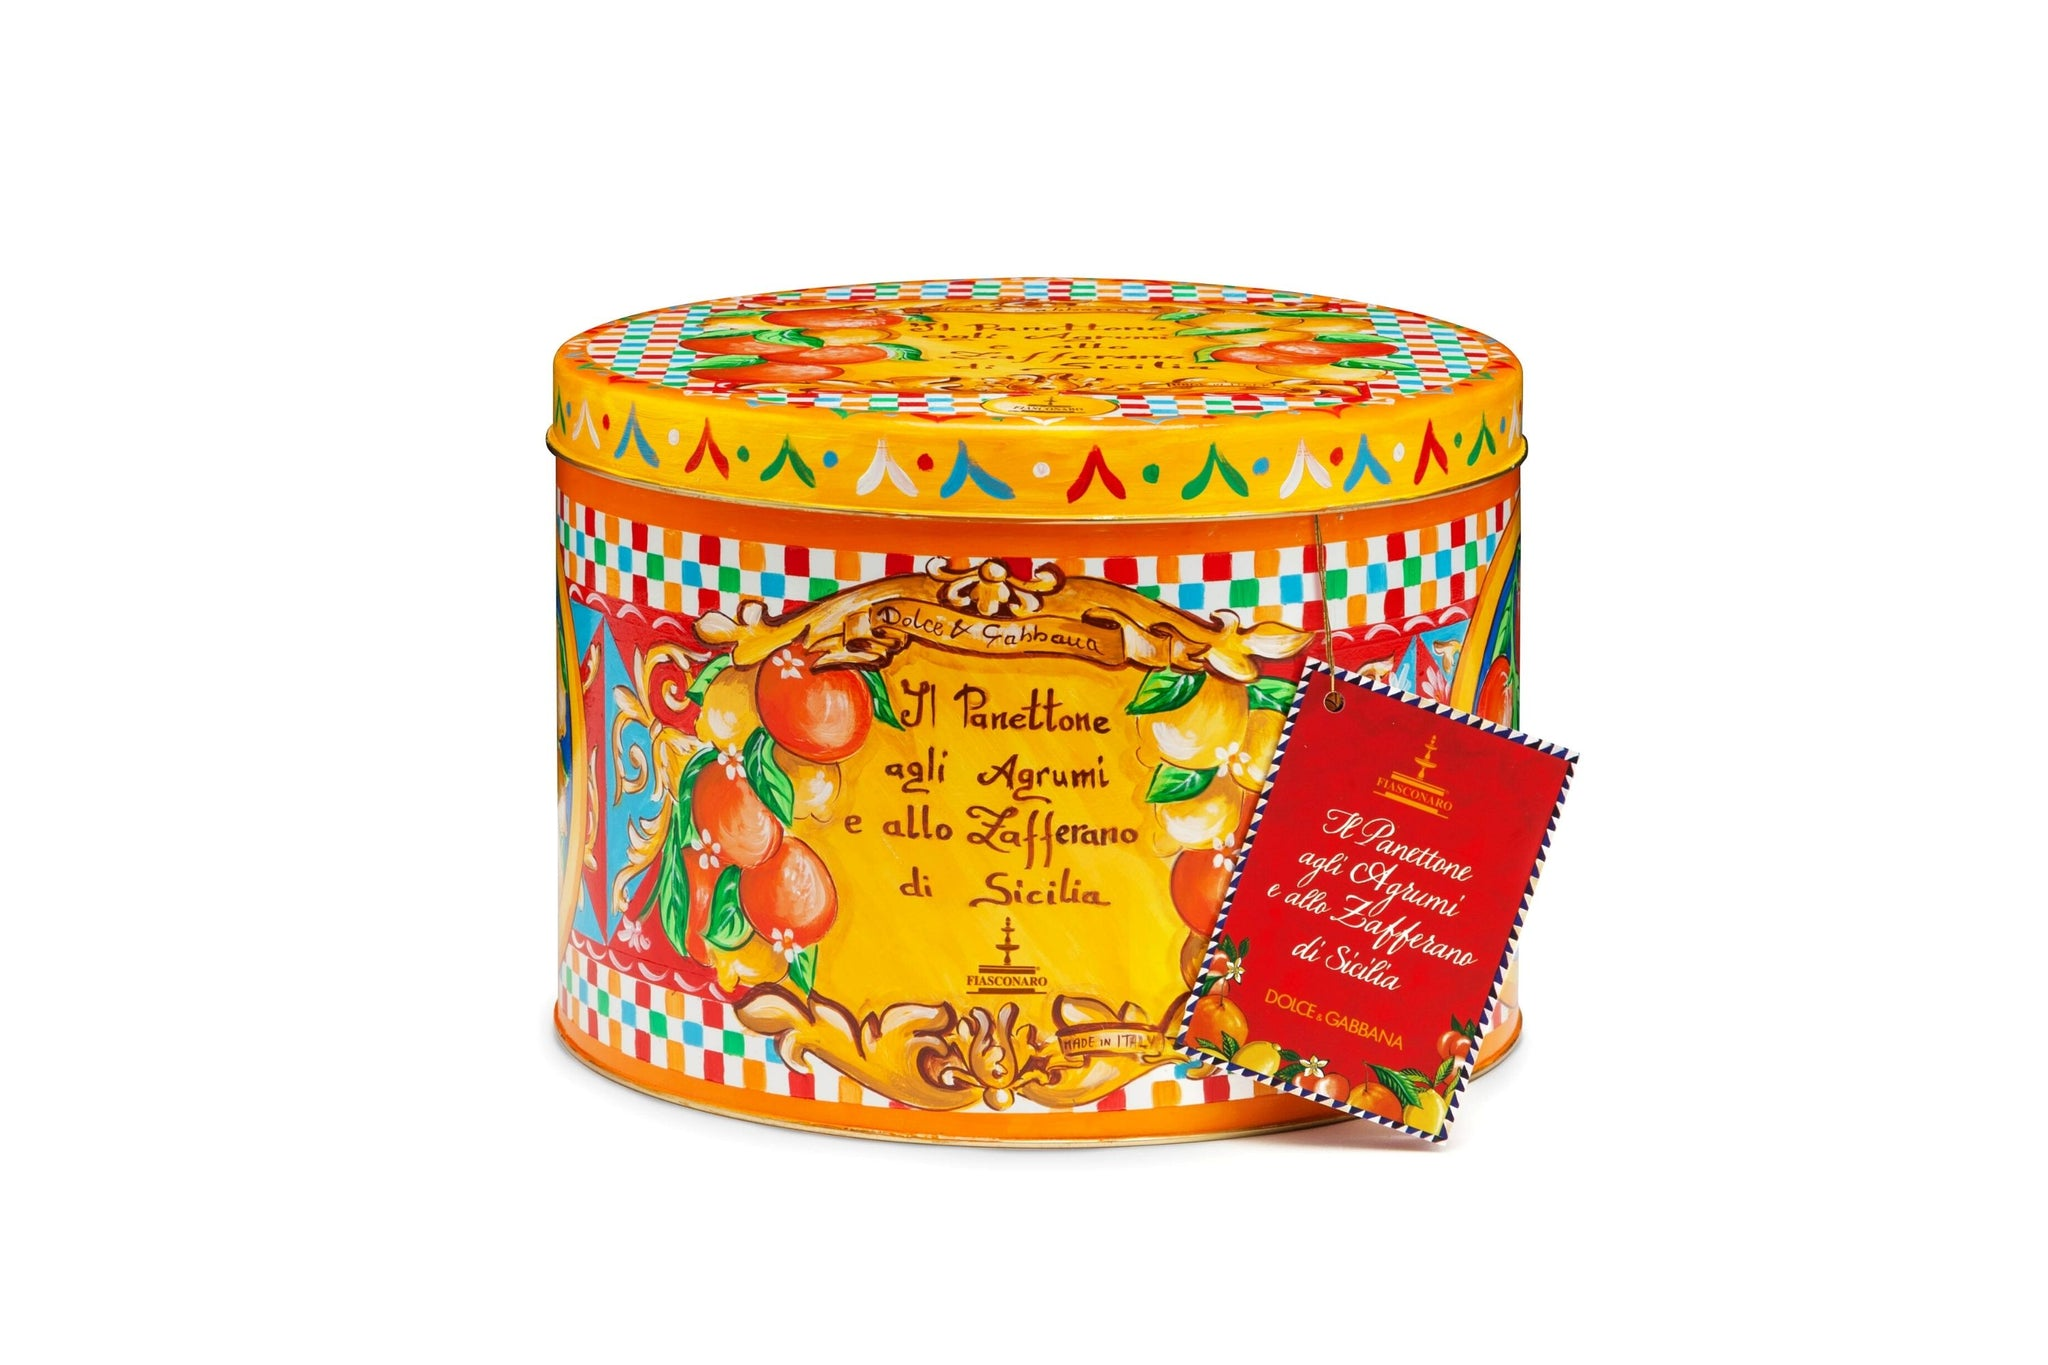 Dolce Gabbana Yellow Tin Candied Oranges and Saffron Panettone from Sicily